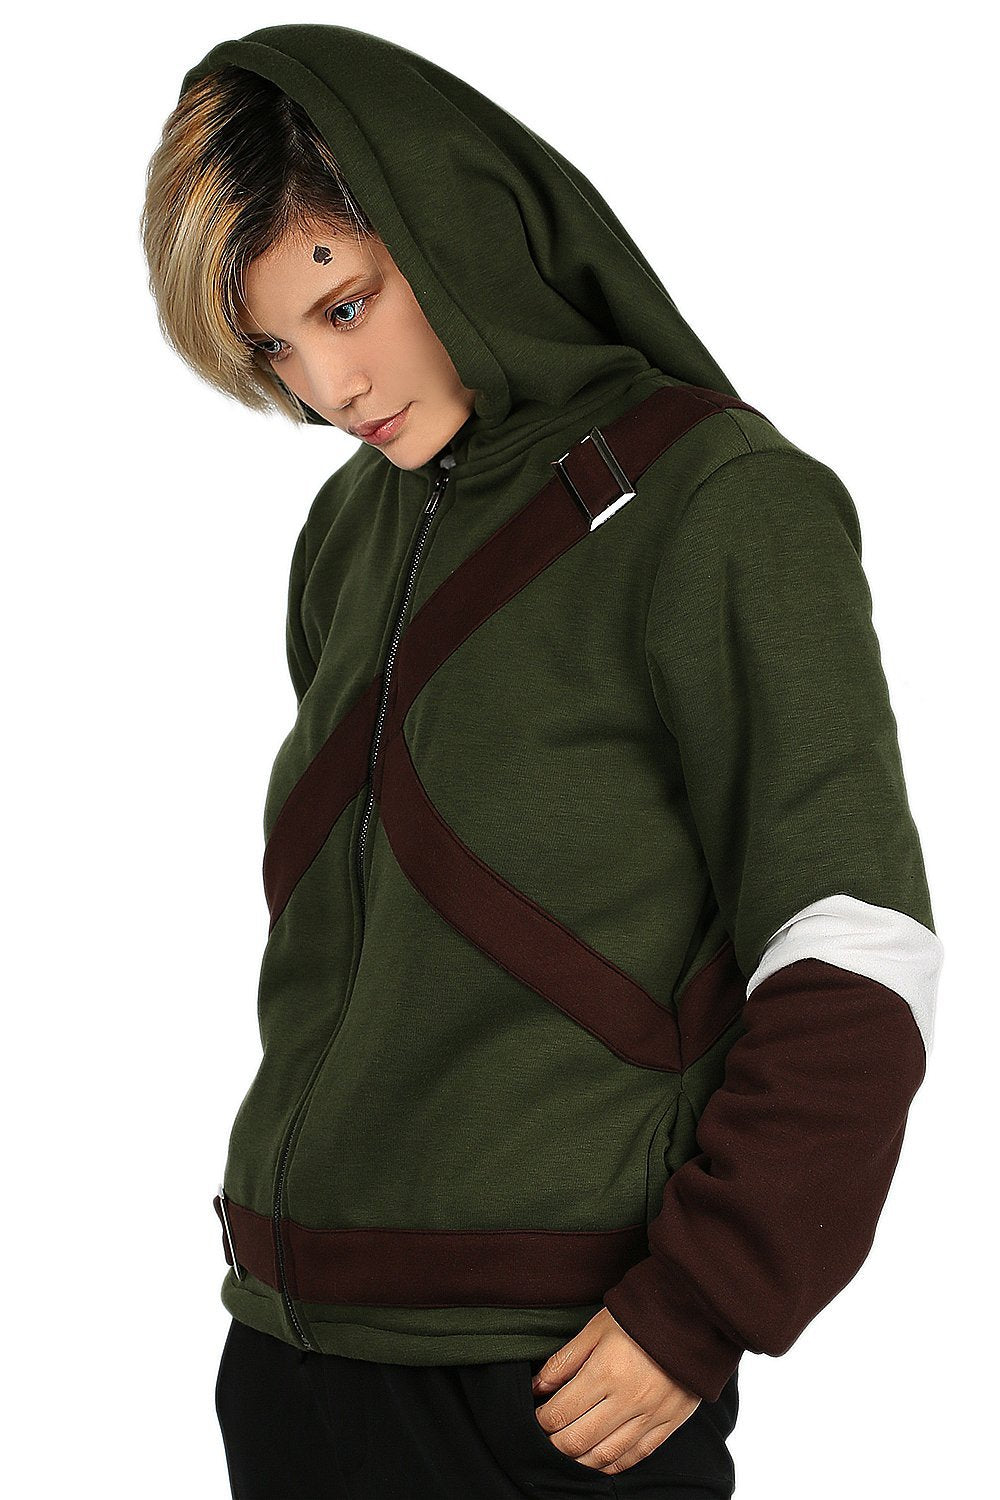 xcoser-de,Xcoser Link Hoodie The Legend of Zelda Link Cosplay Costume for Adults,The Legend of Zelda Costume